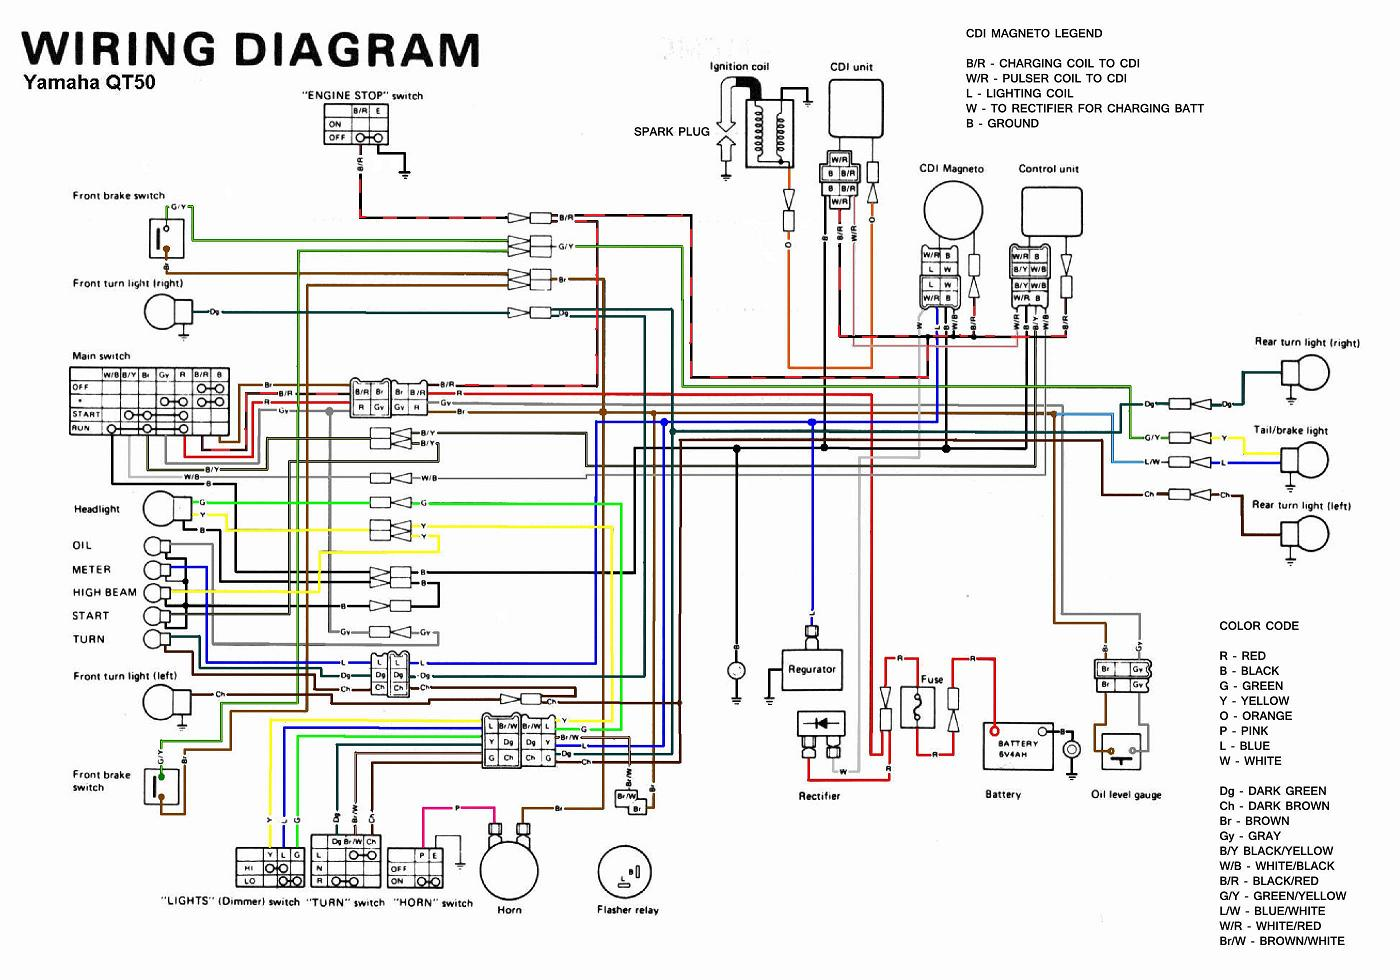 qt50 wiring diagram electrical wiring diagrams xs650 wiring diagram for 1979 1979 yamaha wiring diagram [ 1400 x 980 Pixel ]